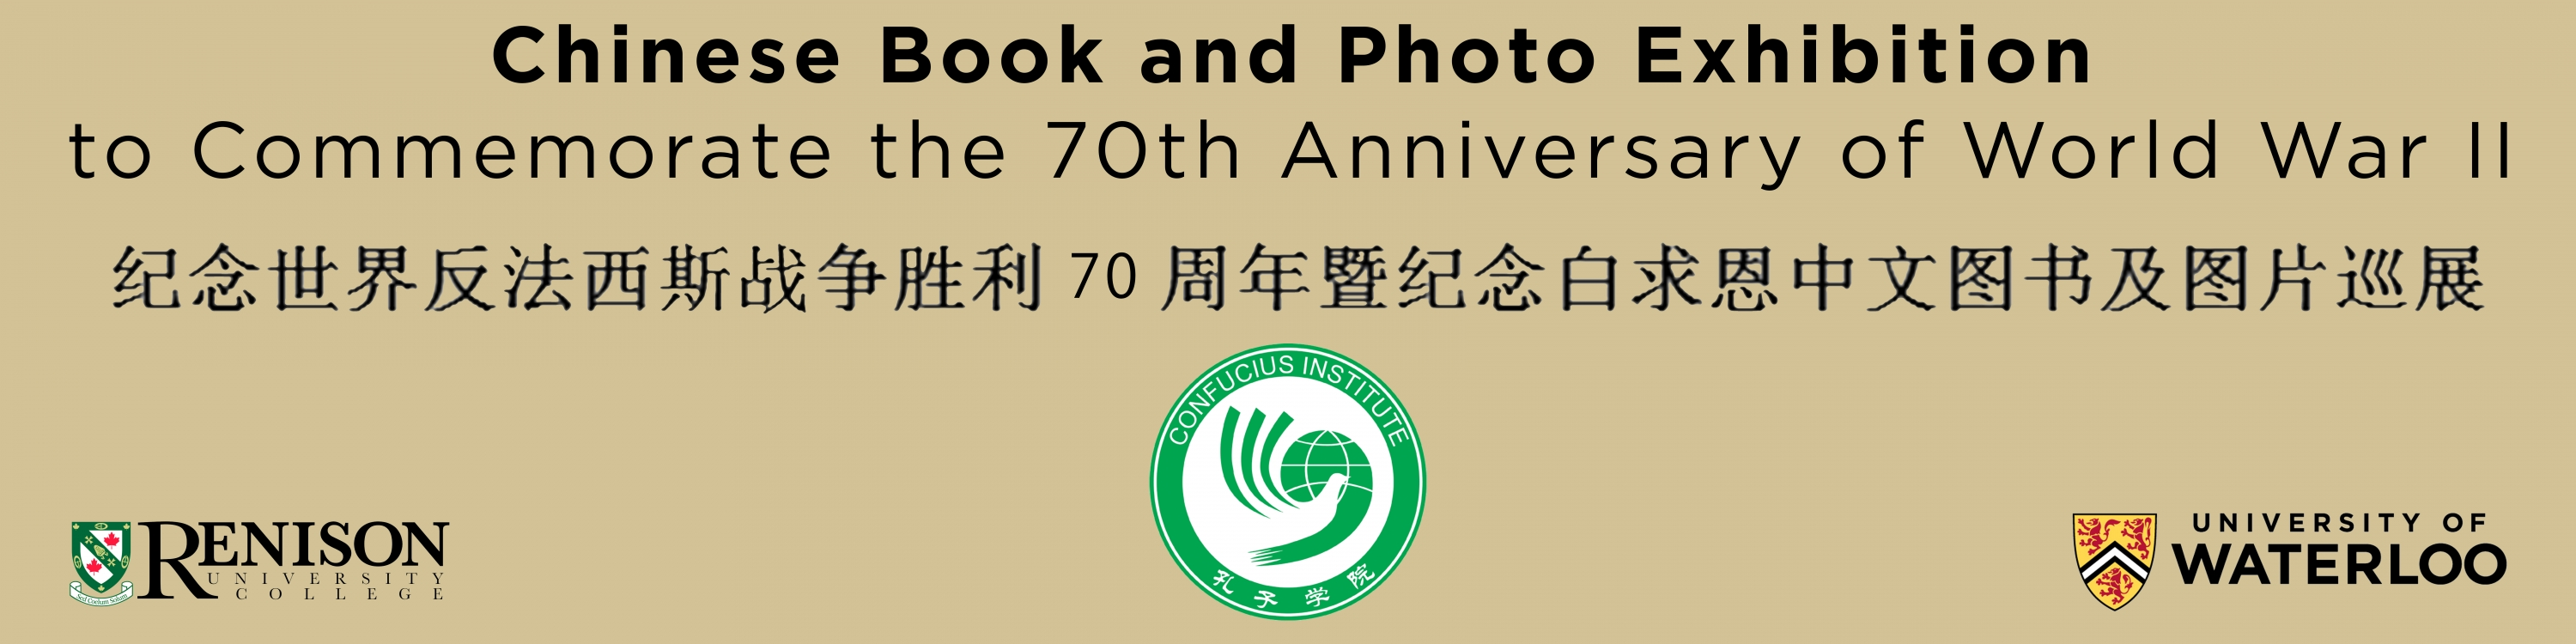 Chinese book and photo exhibition to commemorate the 70th anniversary of world war II